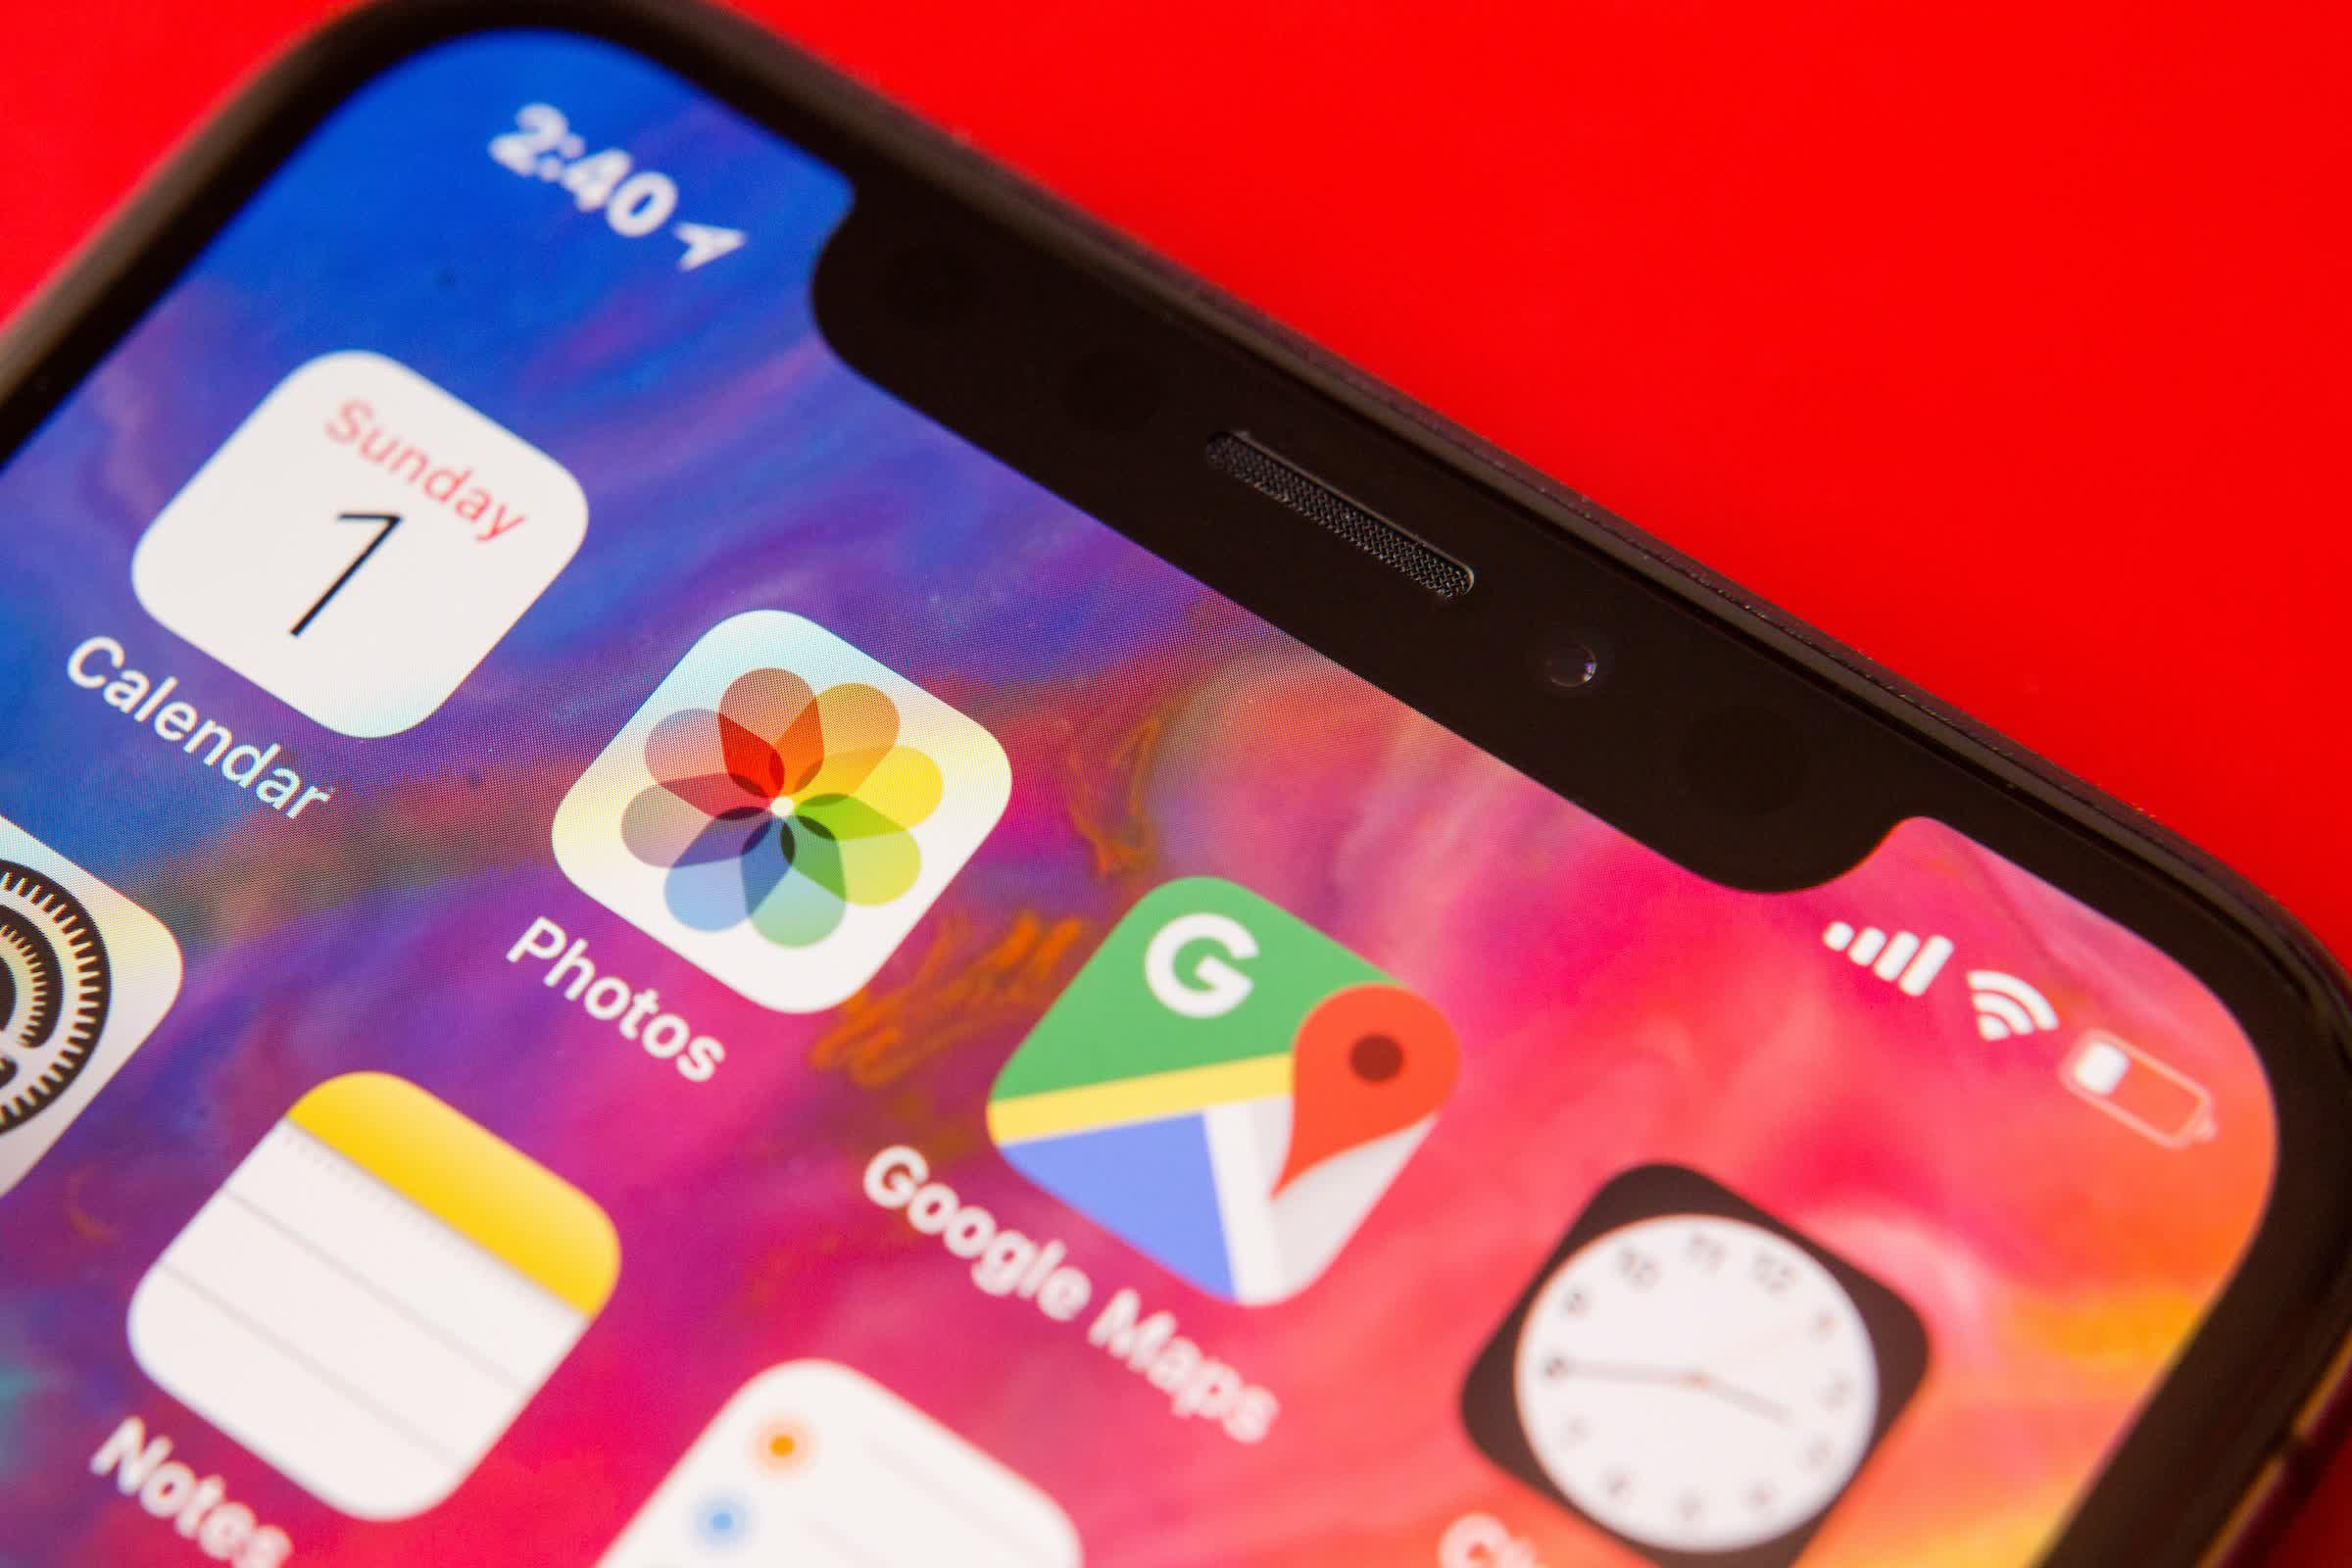 Patent hints at 240Hz refresh rate for iPhone 13